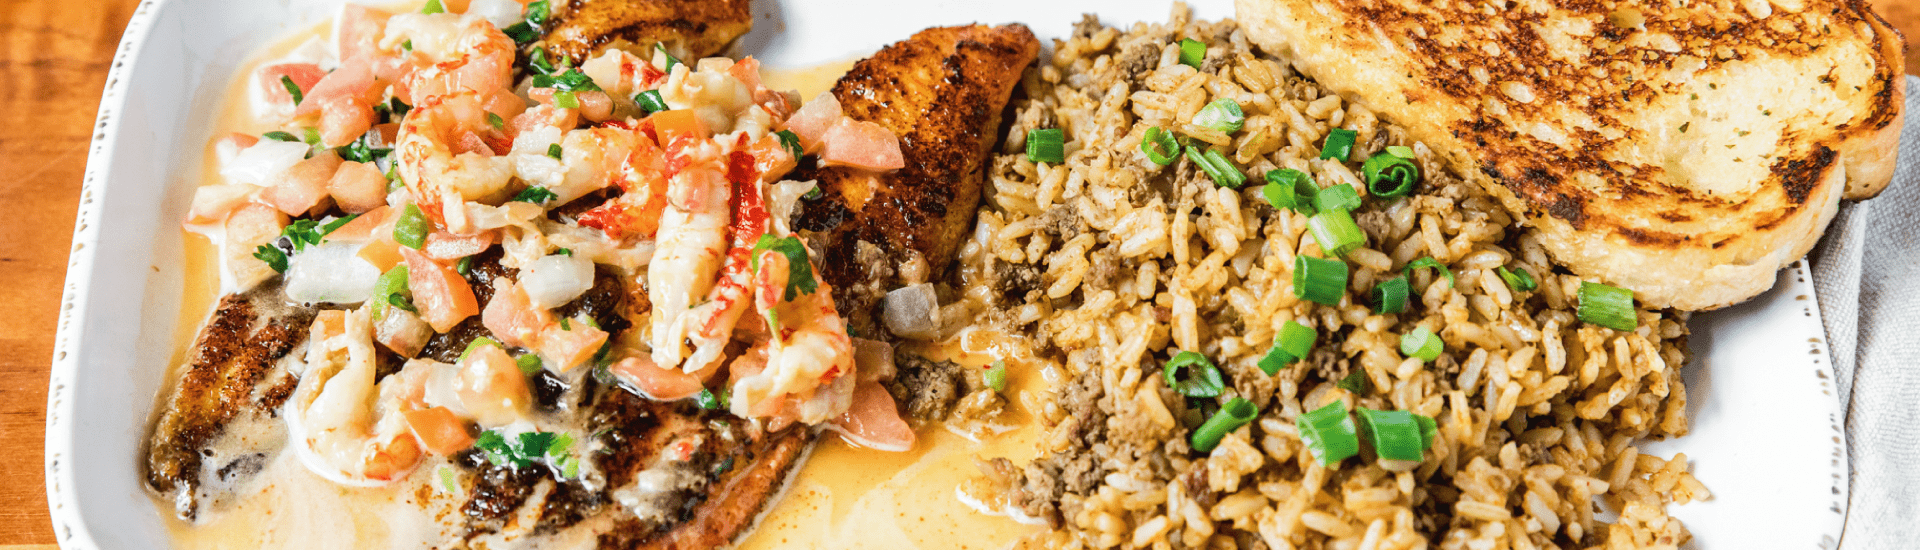 Orleans Seafood Kitchen - Cajun Style Deliciousness